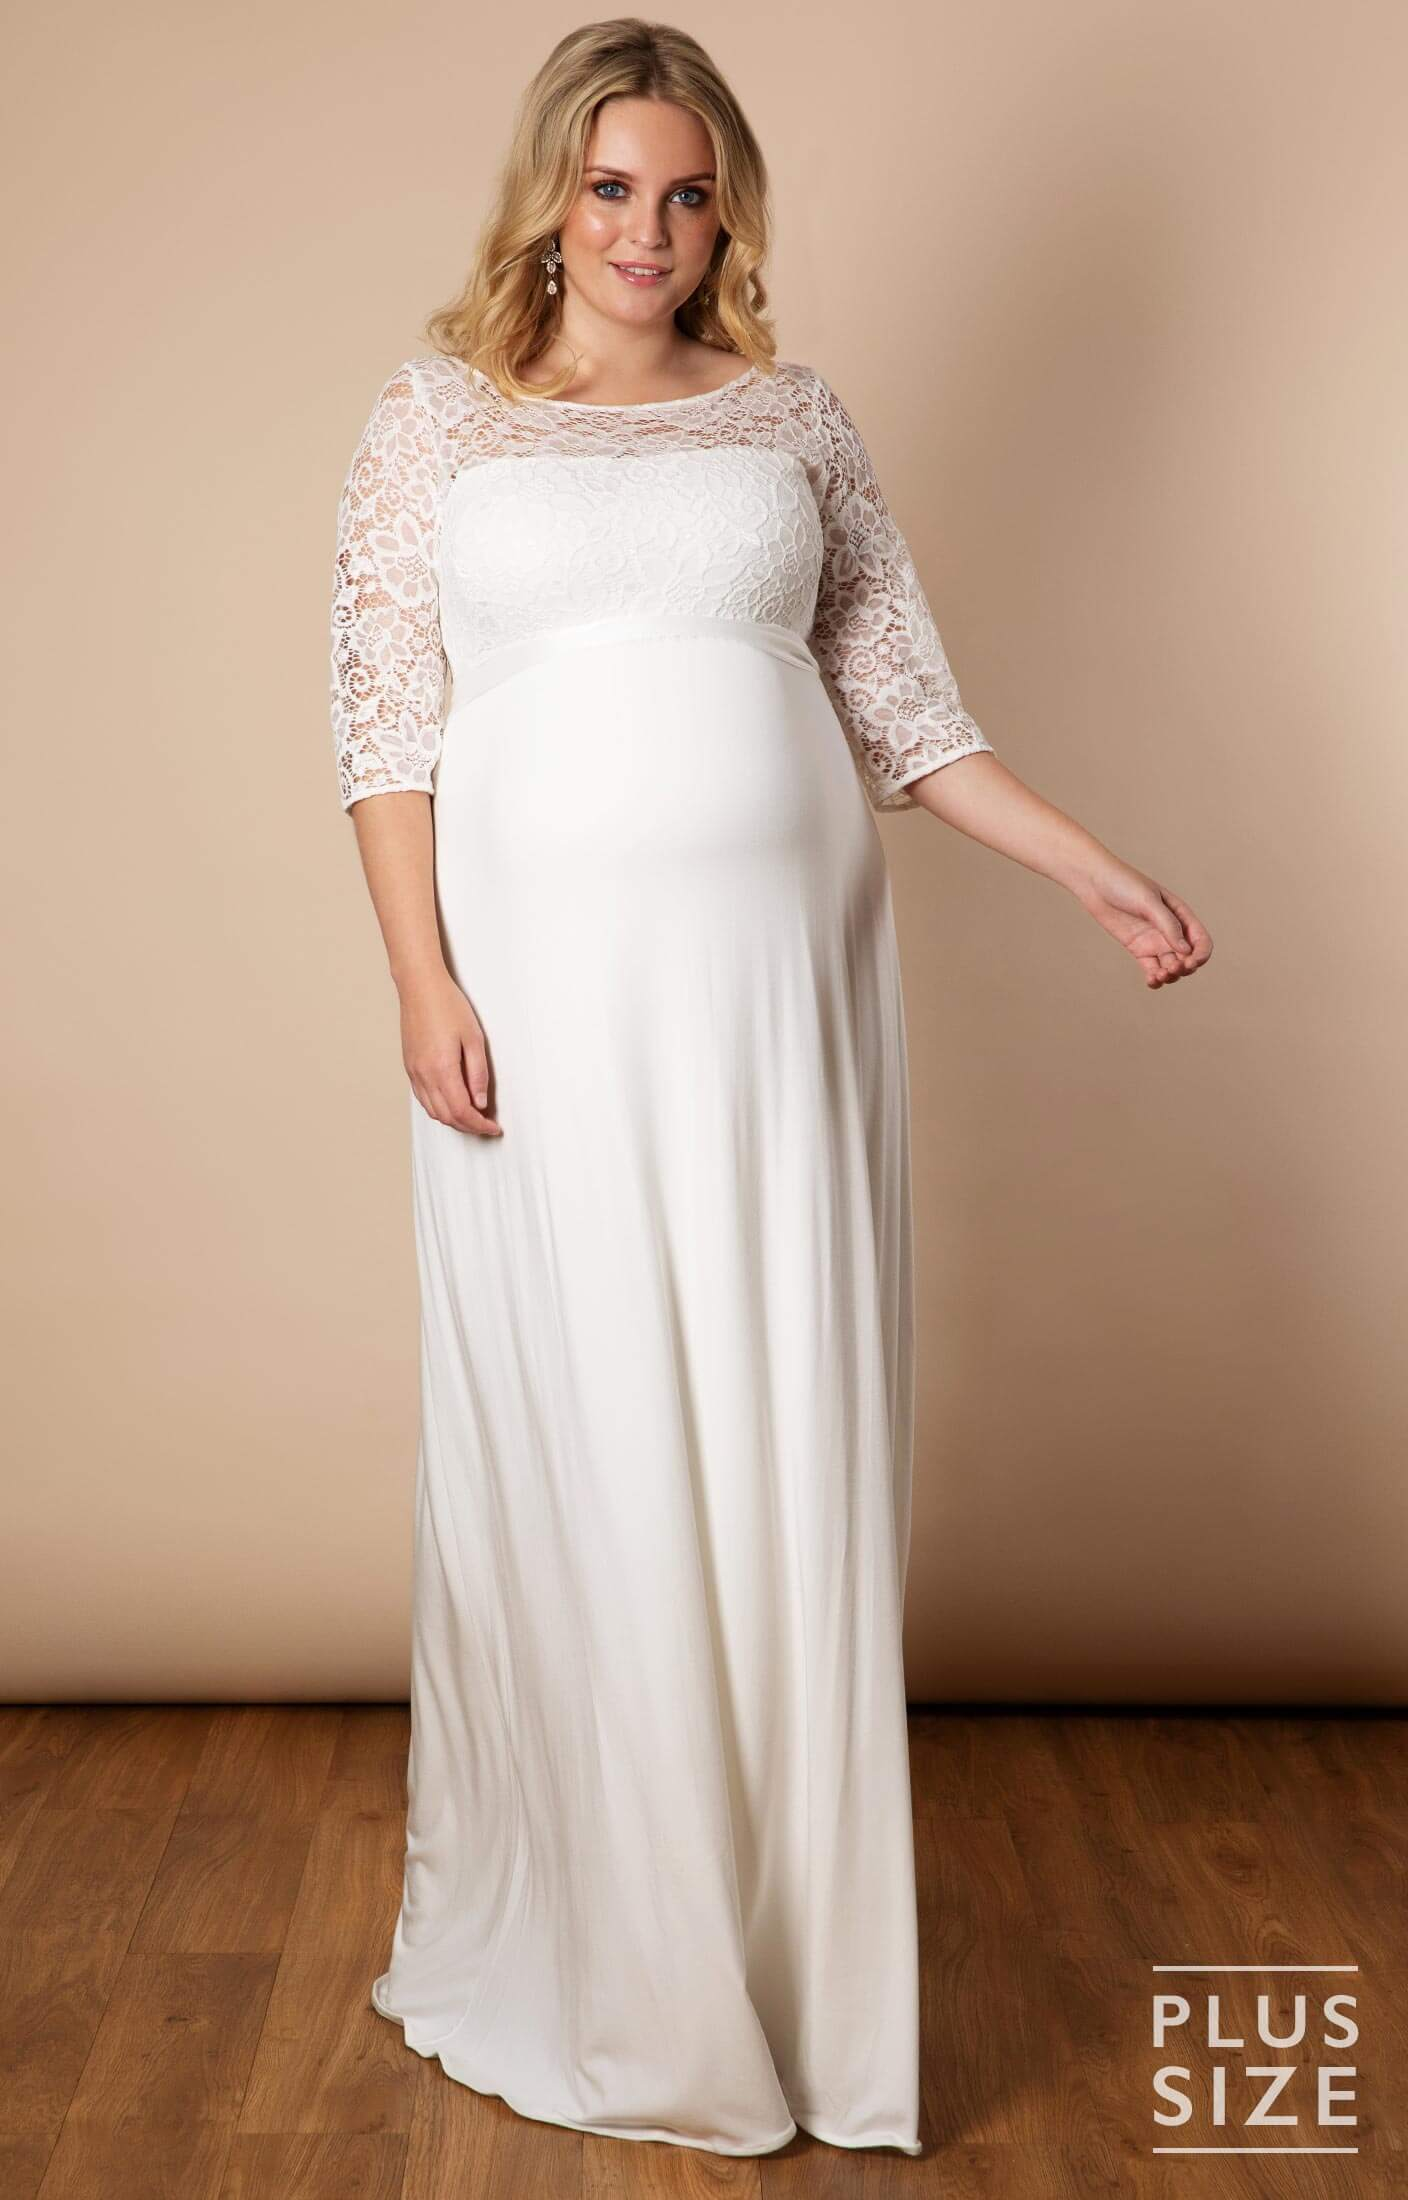 965f1e27f3b1d Lucia Plus Size Maternity Wedding Gown Long Ivory by Tiffany Rose